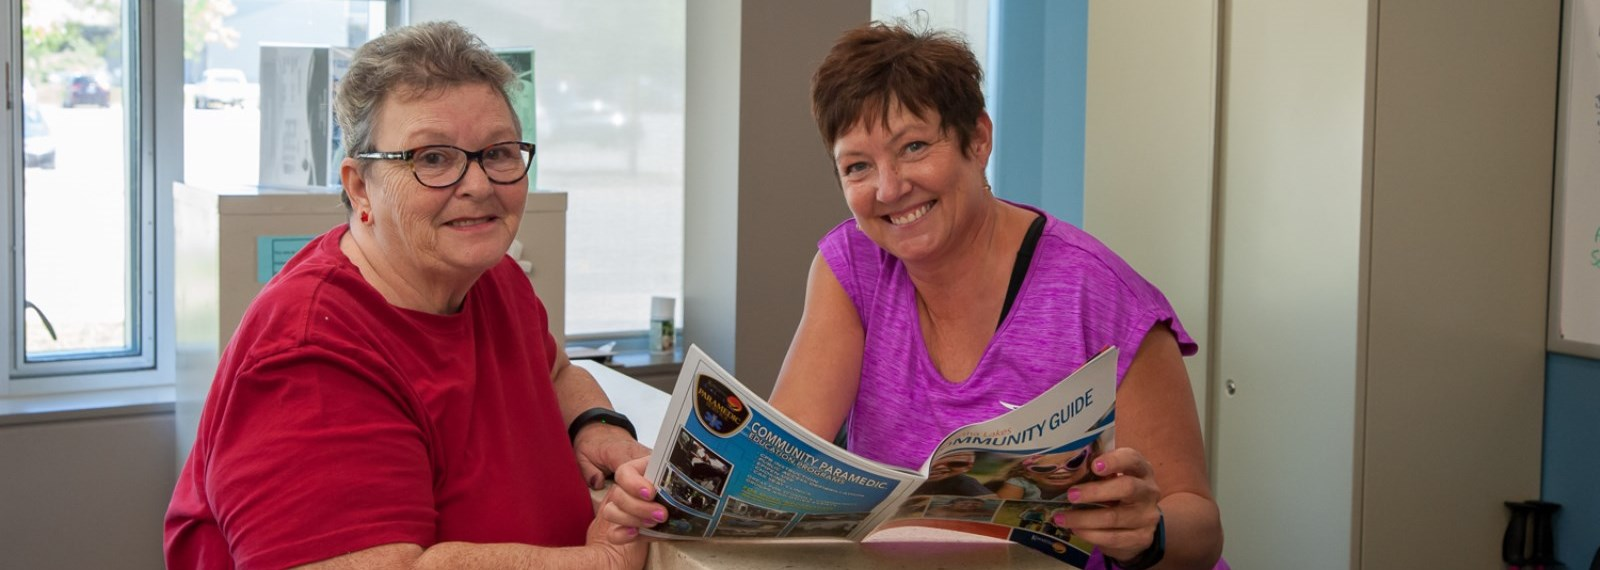 Two women reading the Community Guide magazine